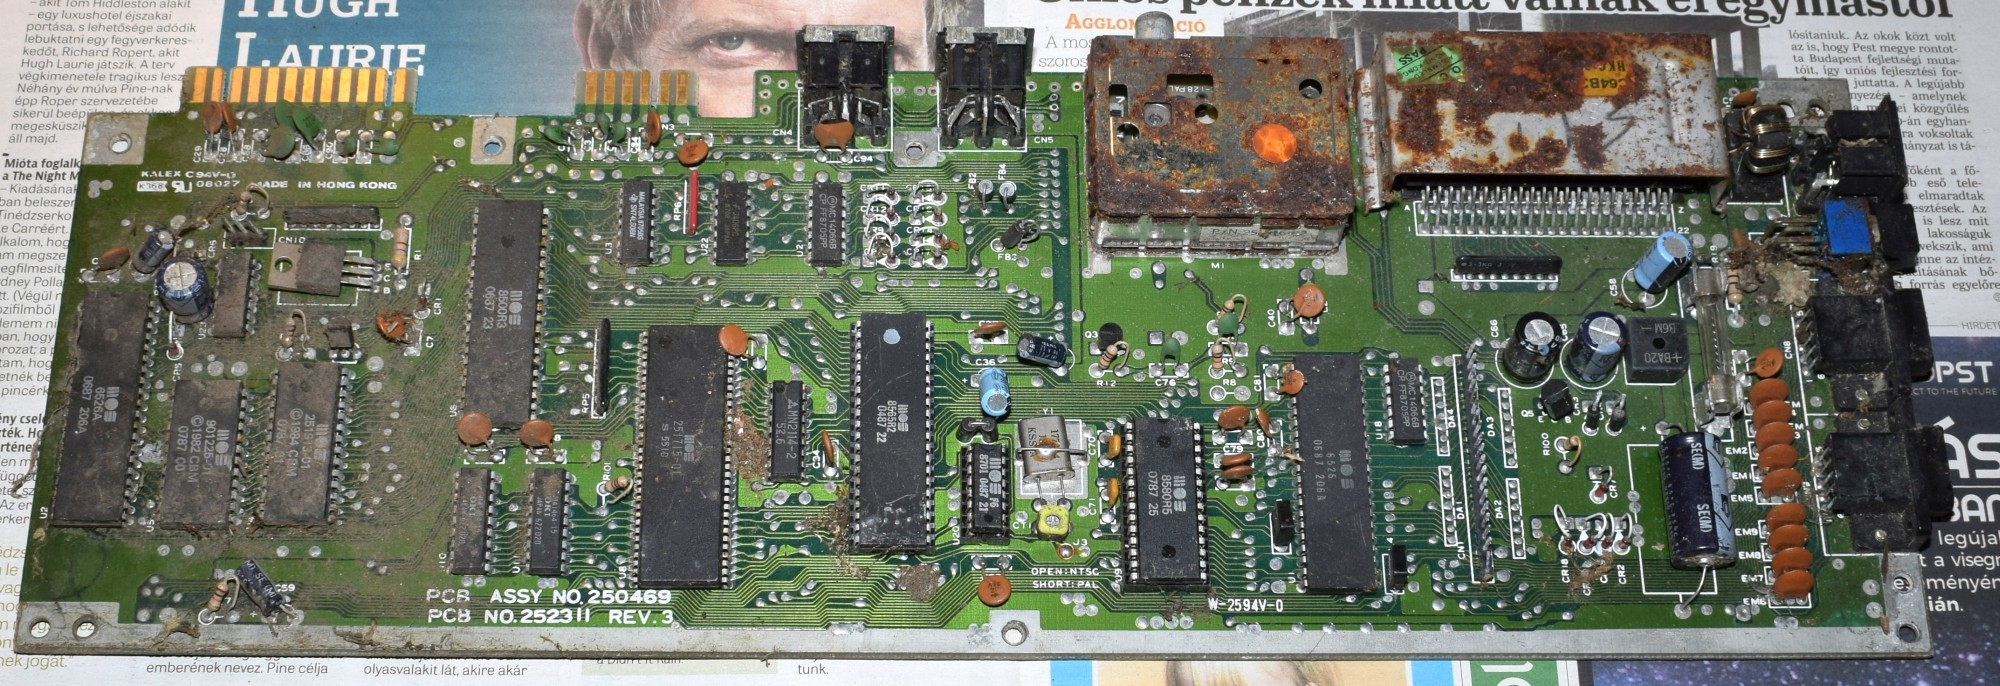 Commodore 64 motherboard repair